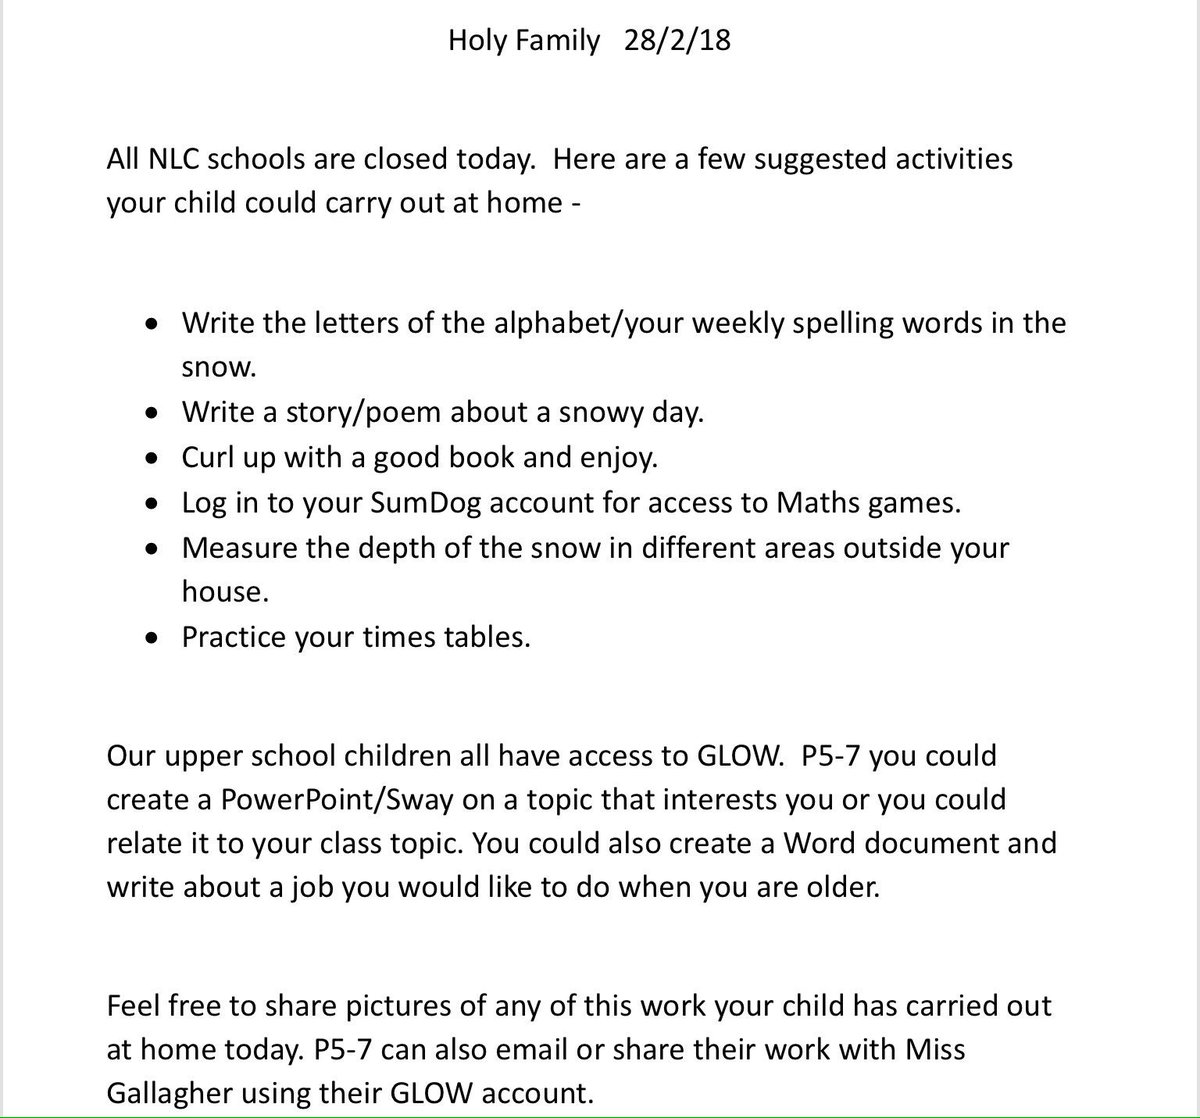 Holy Family Primary on Twitter: